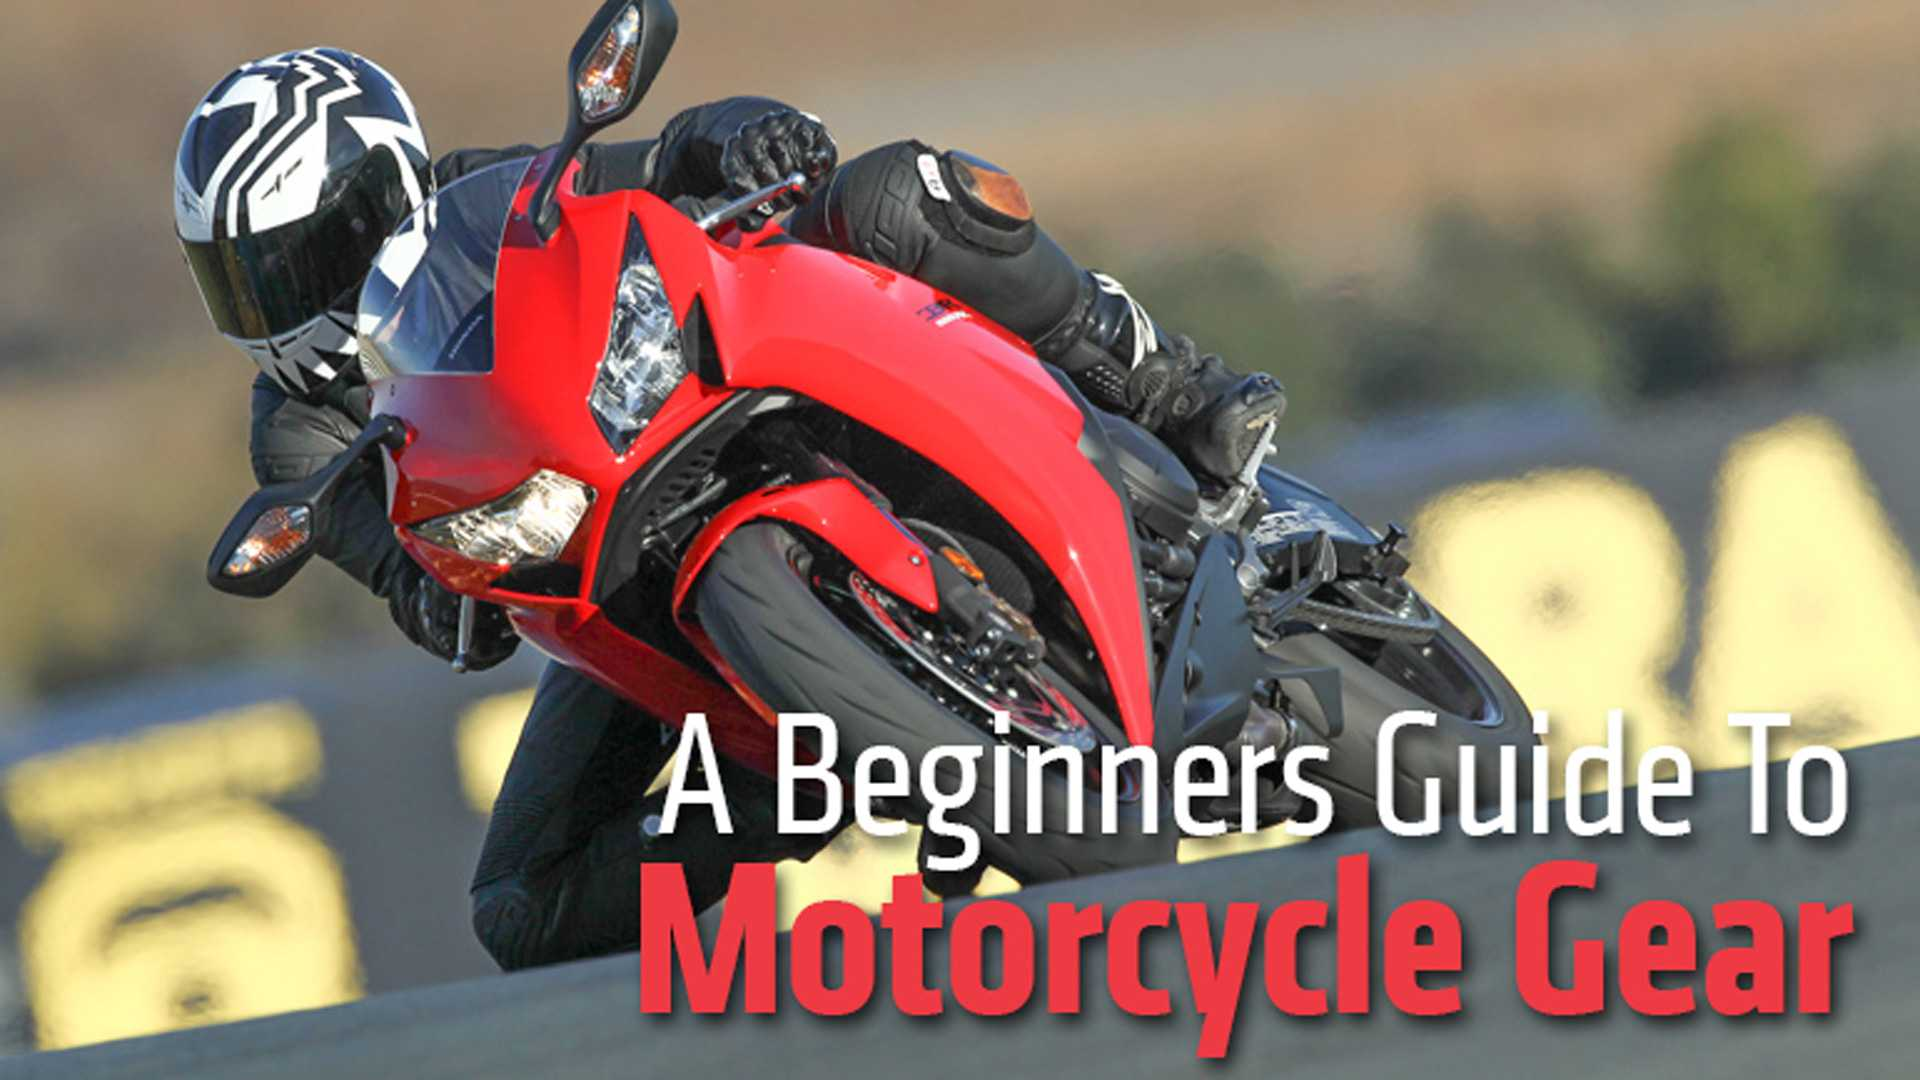 ab0a3f73fa1f A Beginner s Guide To Motorcycle Gear